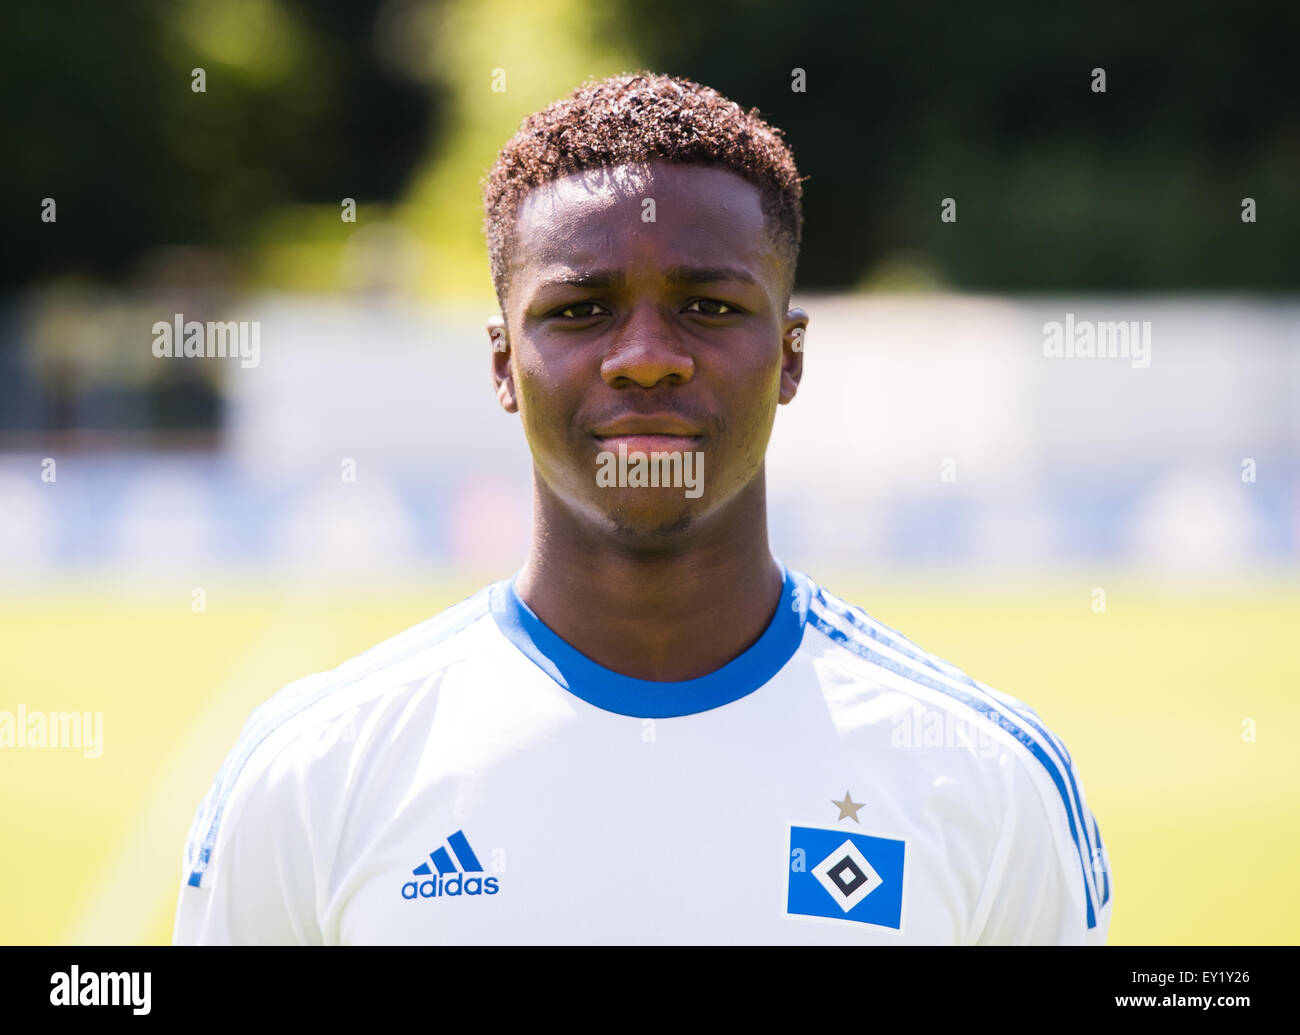 German Soccer Bundesliga 2015/16 - Photocall of Hamburger SV on 15 July 2015 in Hamburg, Germany: Gideon Jung - Stock Image